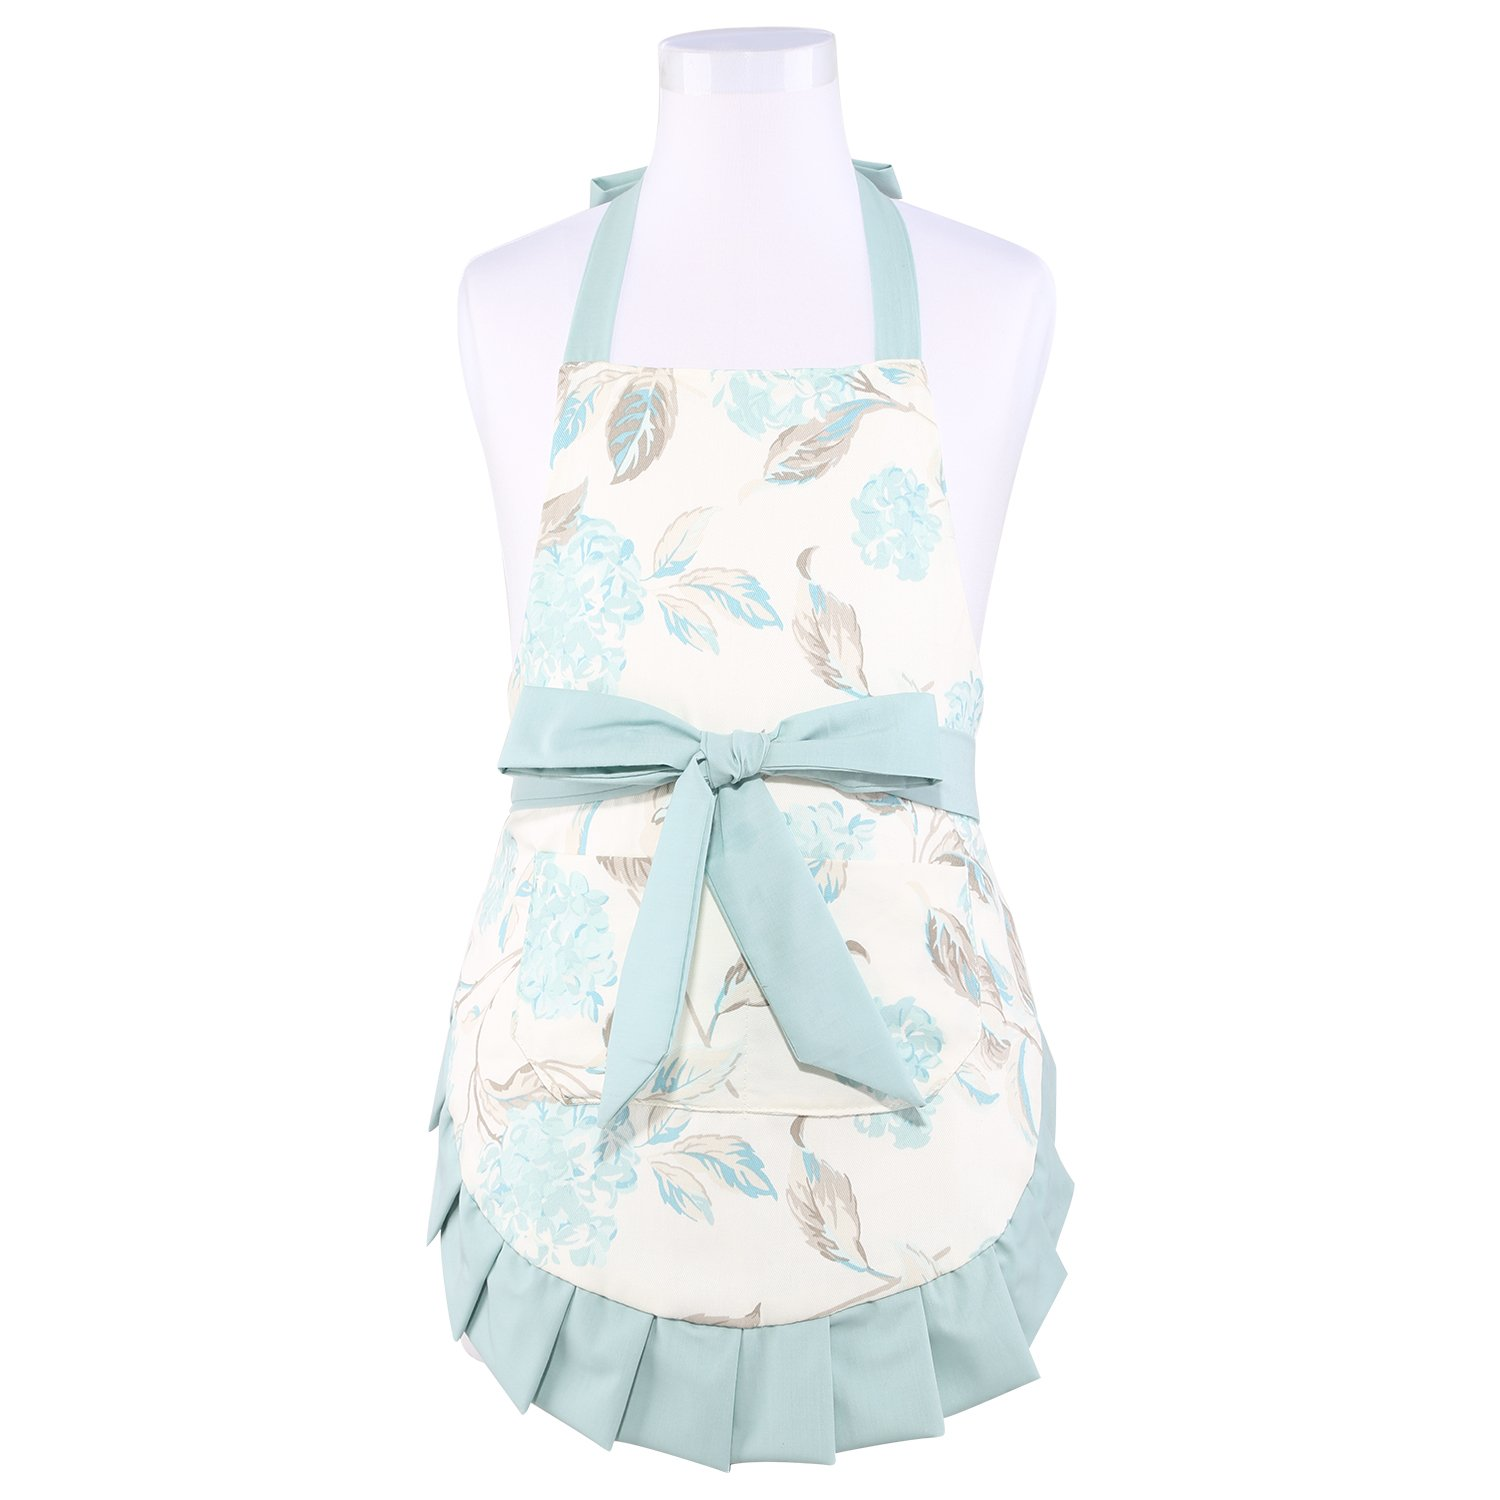 Neoviva Cotton Twill Child Apron with Big Pocket for Play Kitchen, Lining Applied, Style Kathy, Floral Hydrangea Clear Aqua